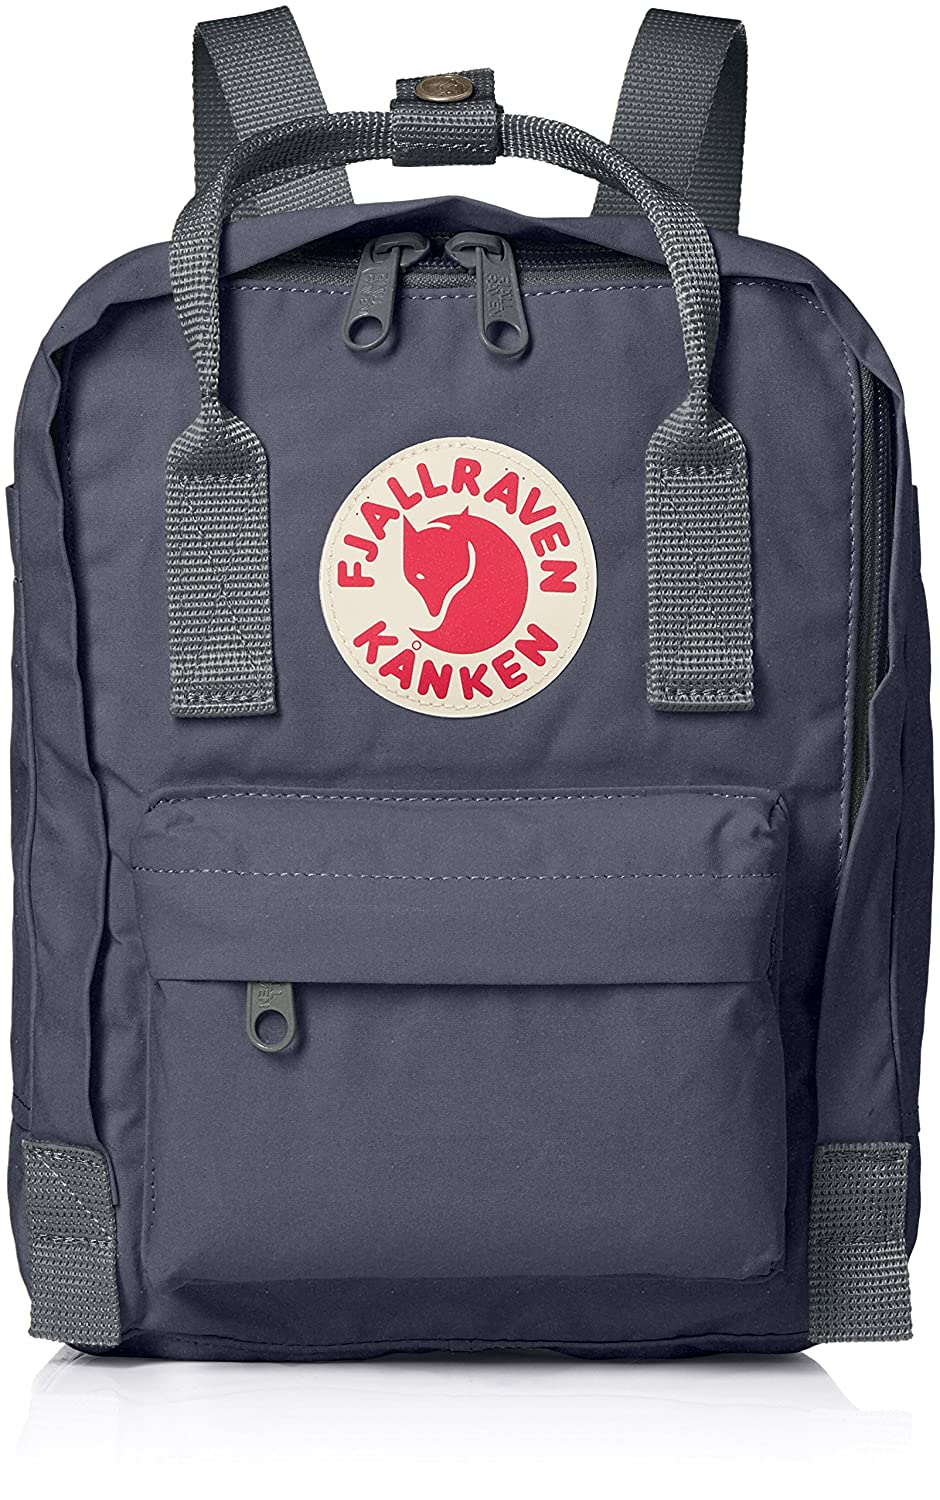 [フェールラーベン] リュック Kanken Mini 23561-Official B0798ZPK3K Graphite Graphite